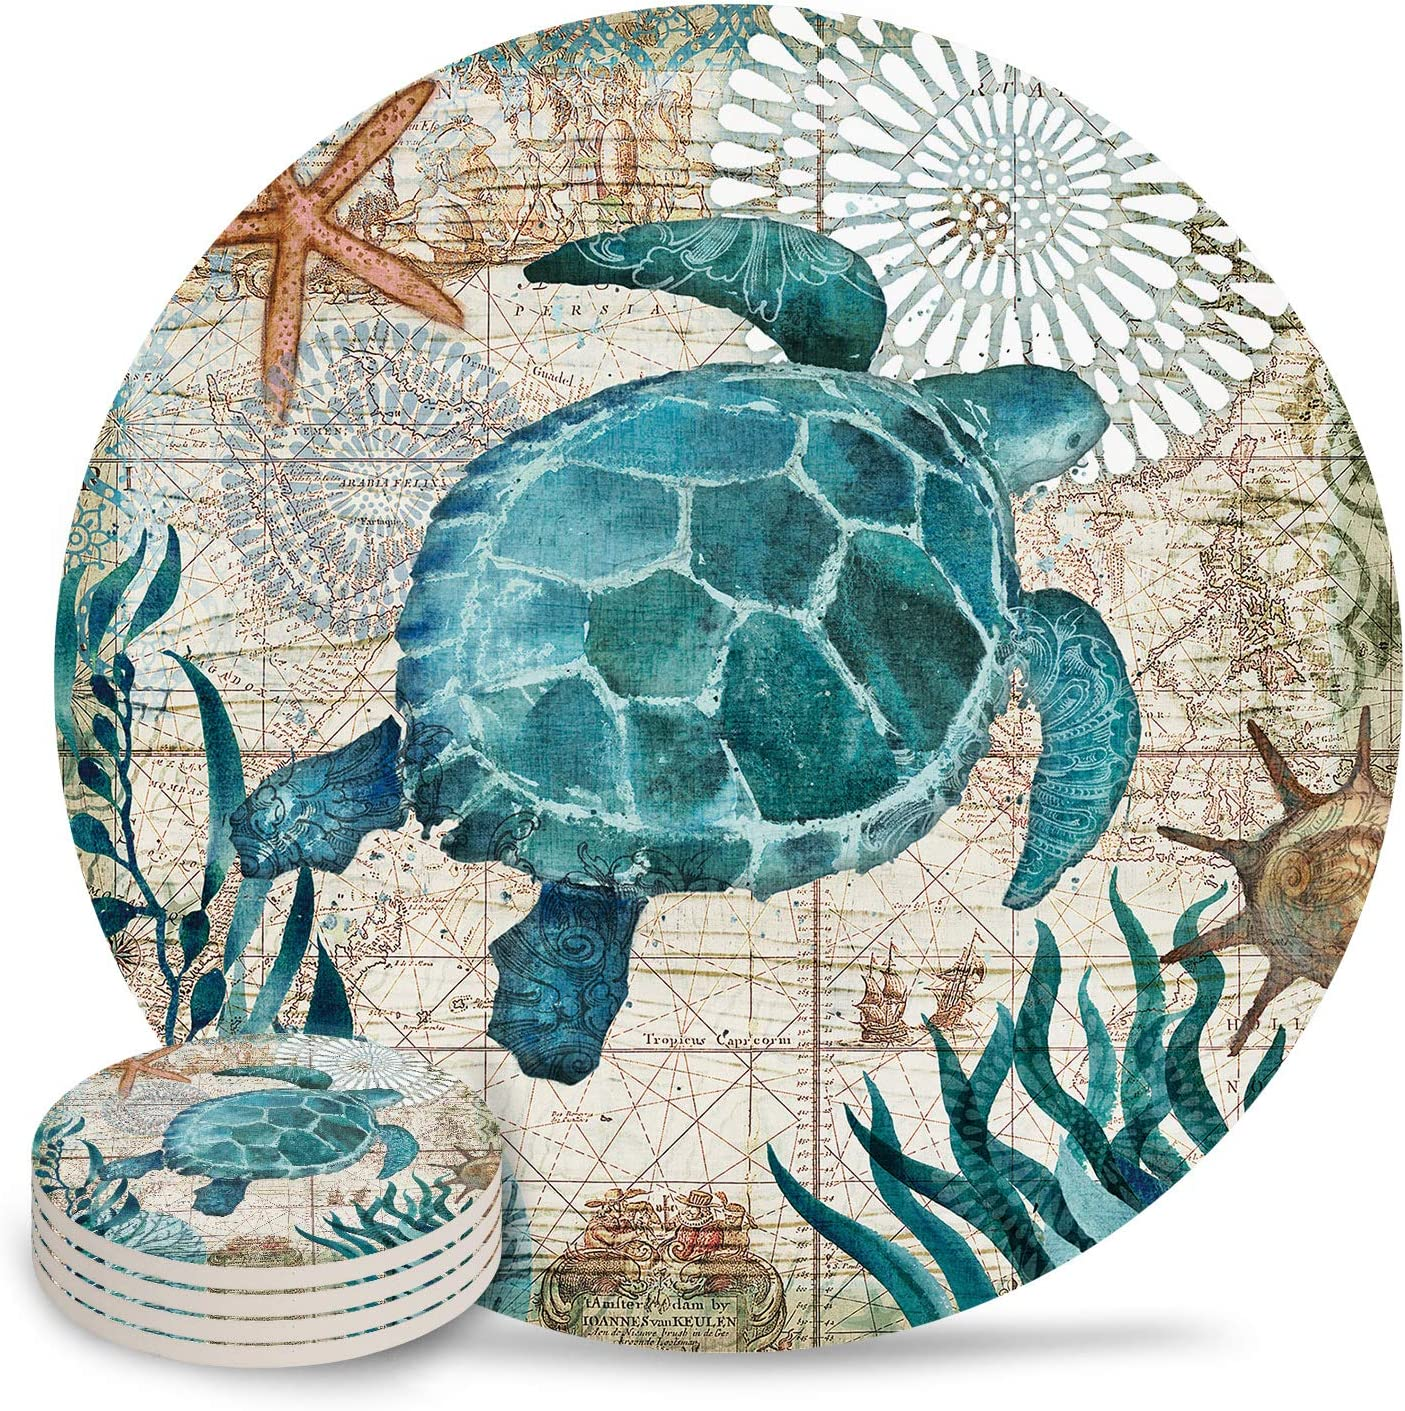 Turtle Coasters for Drinks Absorbent Green Sea Beach Ceramic Coasters with Natural Cork Base Stone Coasters Perfect Housewarming Hostess Gift for Birthday,New Home,Living Room Decor 4pc